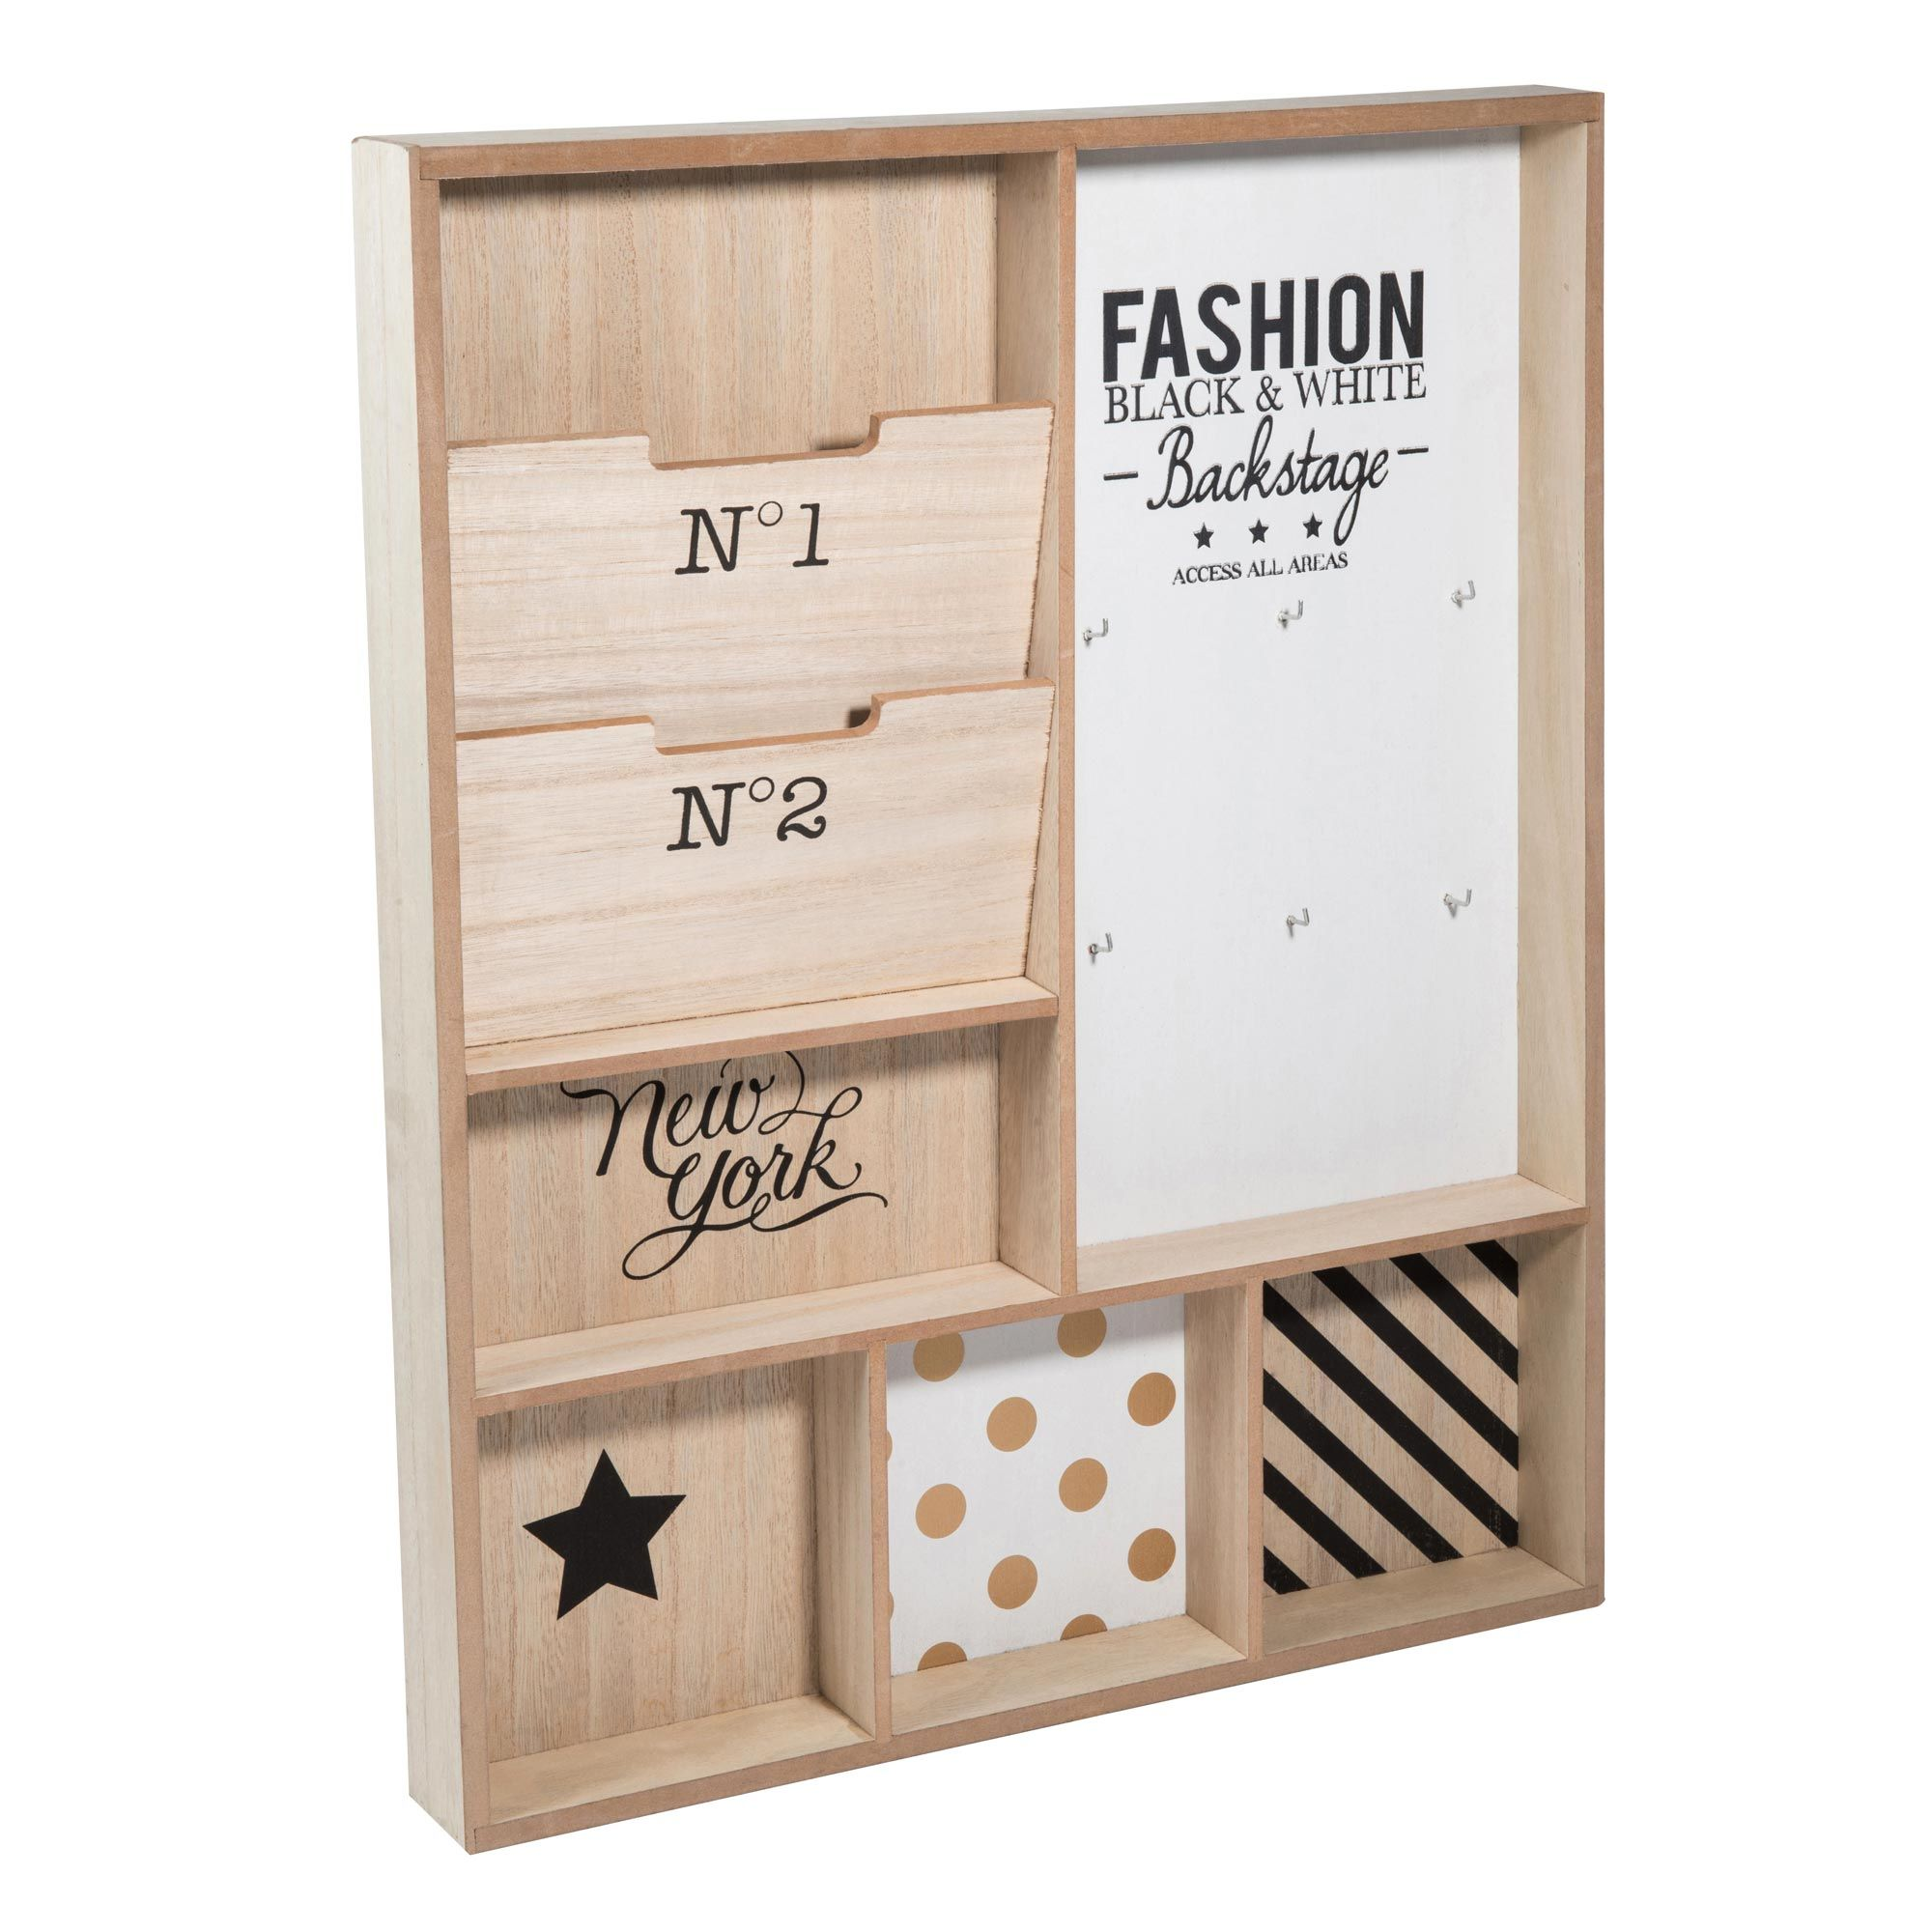 porte courrier mural en bois blackstage maisons du monde essayer try pinterest porte. Black Bedroom Furniture Sets. Home Design Ideas